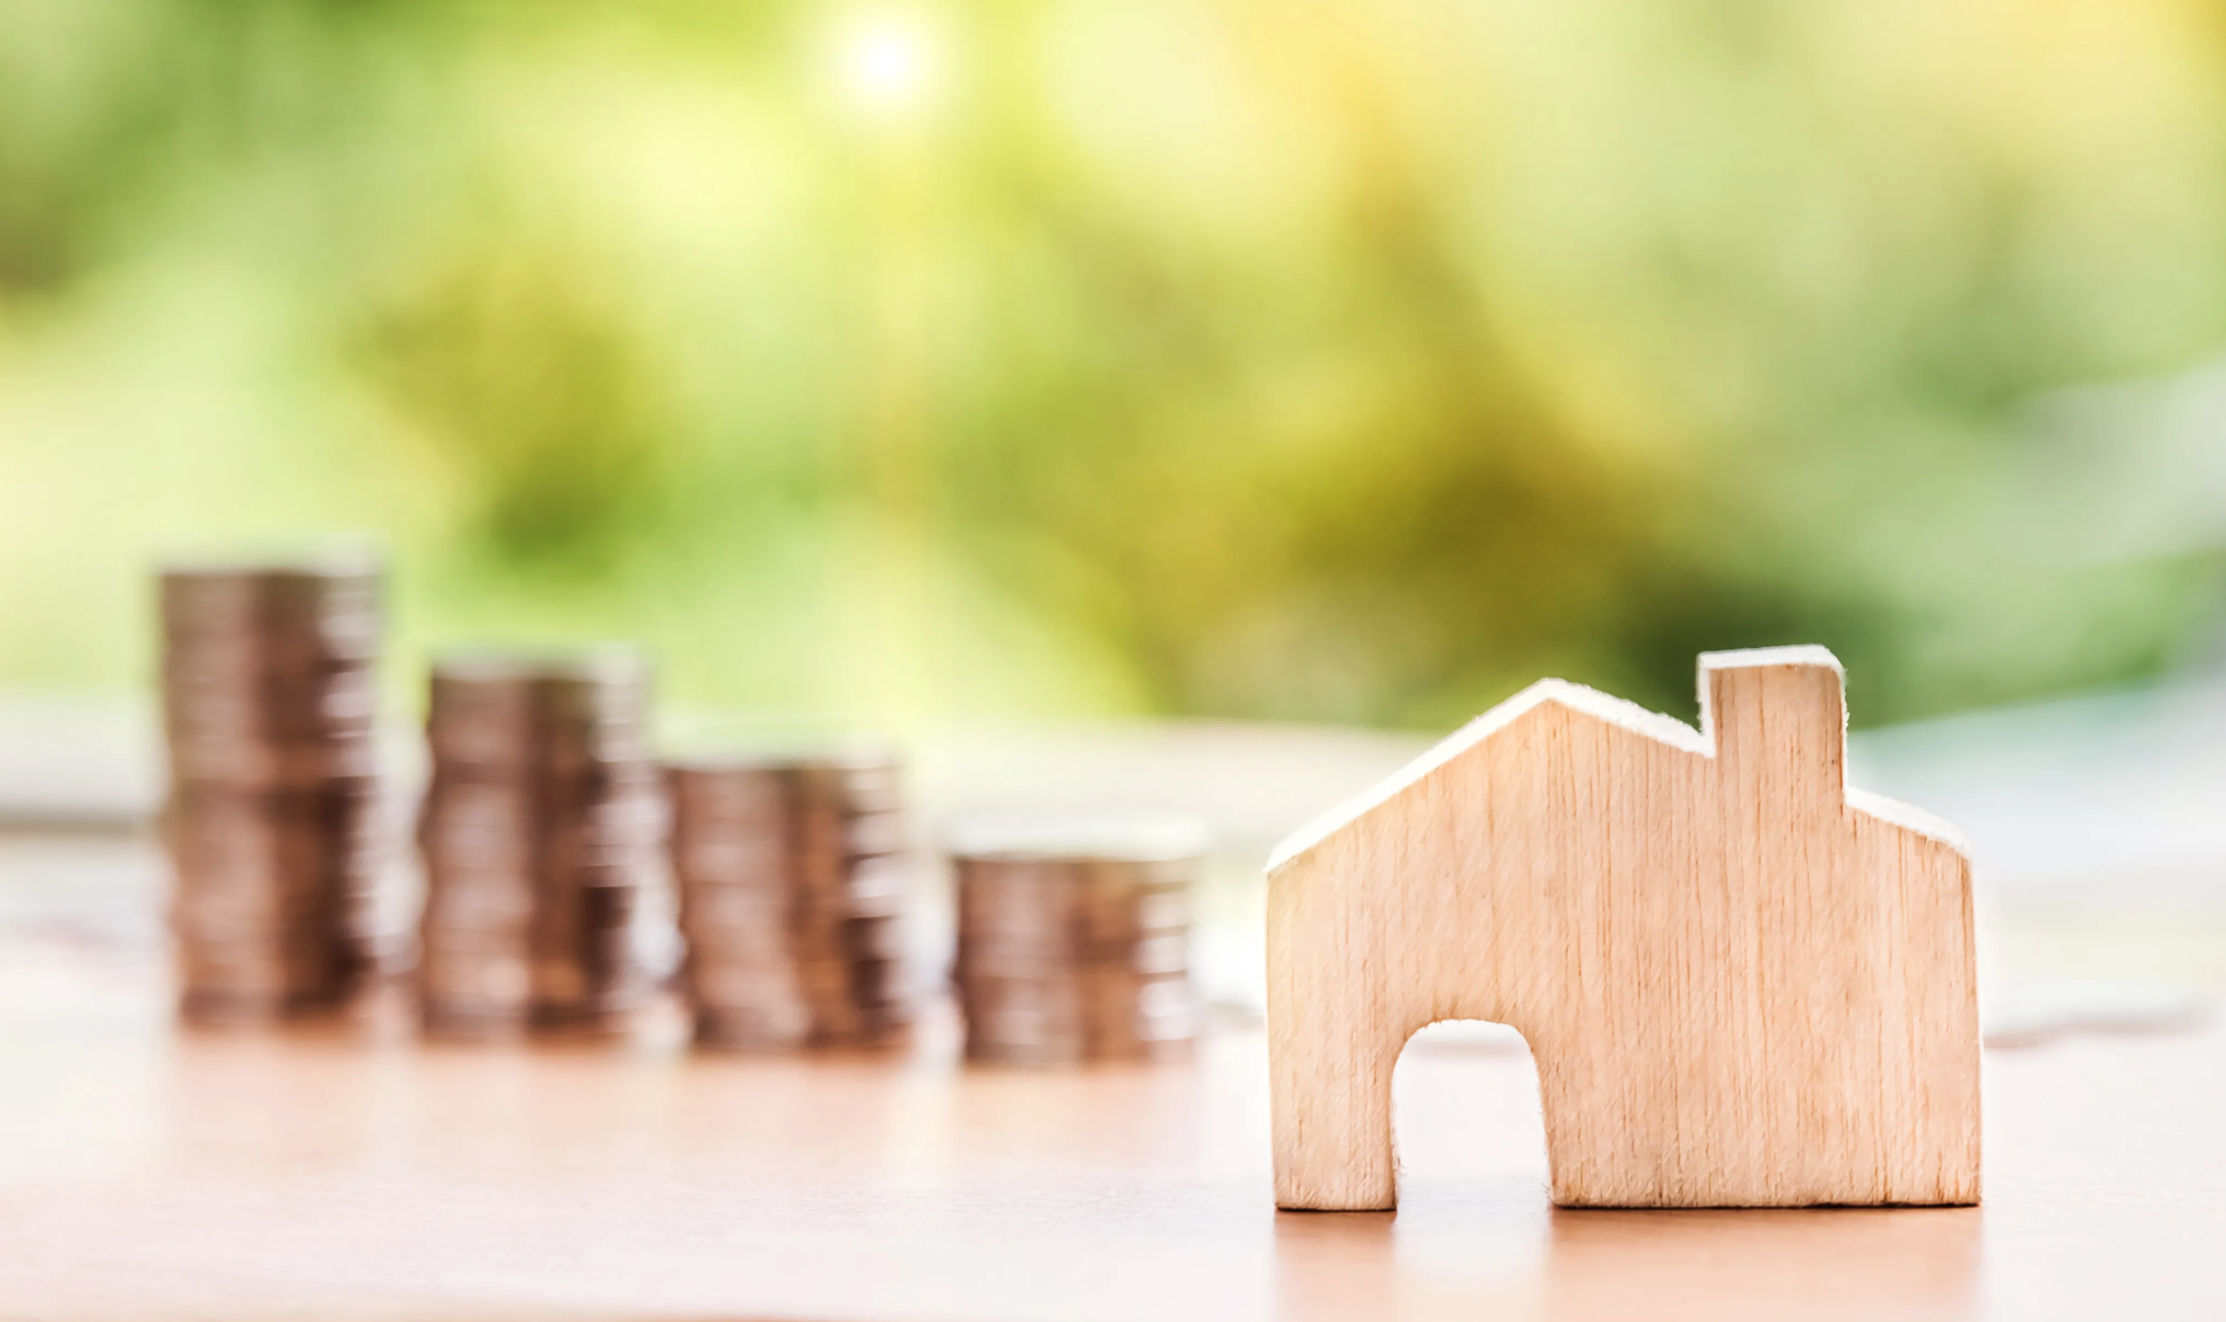 What Will Home Prices Look Like Over The Next Few Years